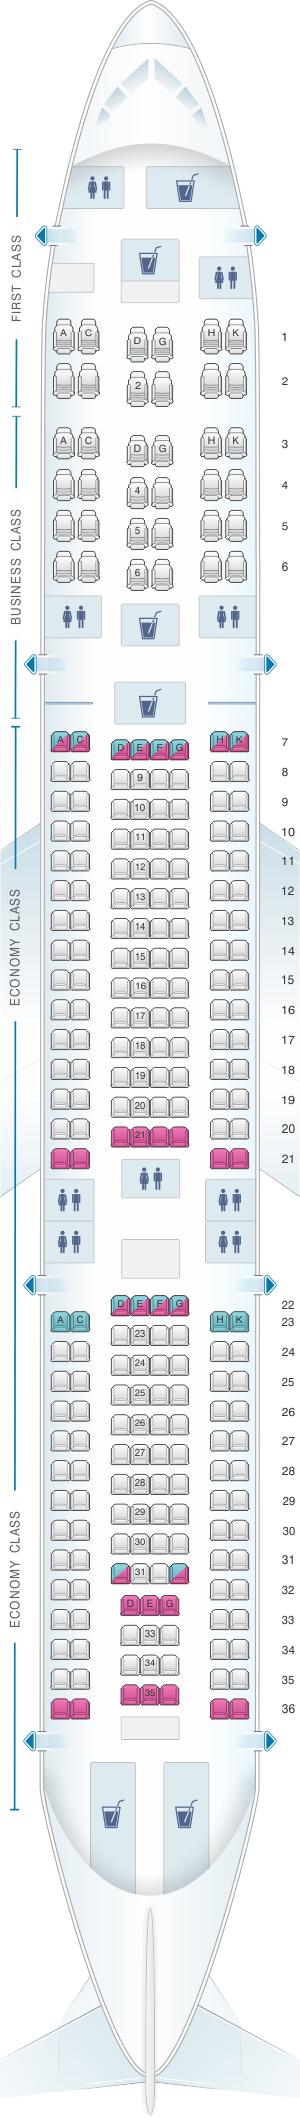 Seat map for Egyptair Airbus A340 212